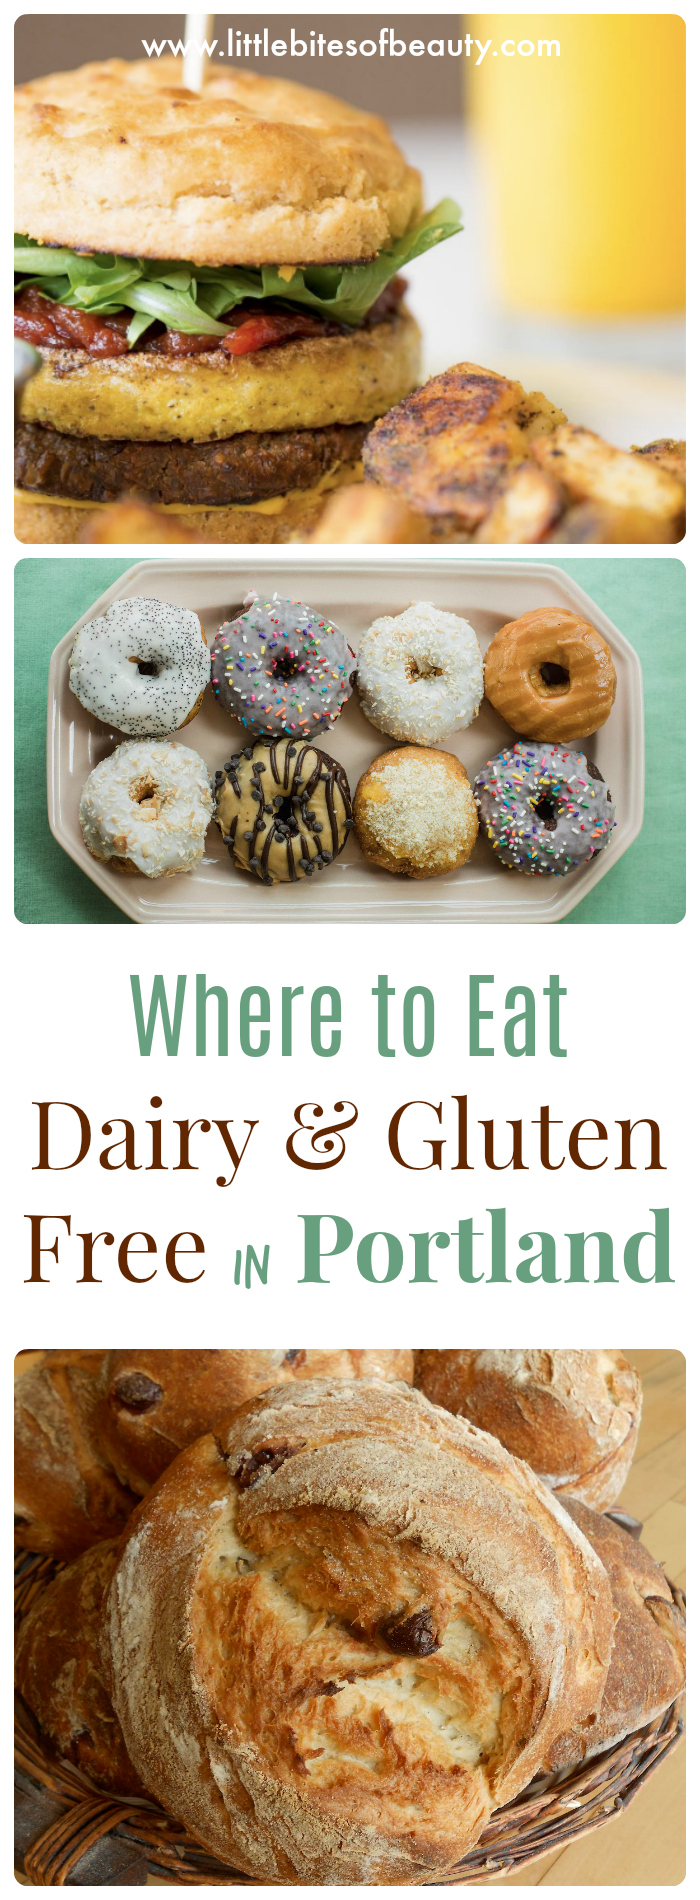 Where to Eat Dairy and Gluten Free In Portland, Oregon